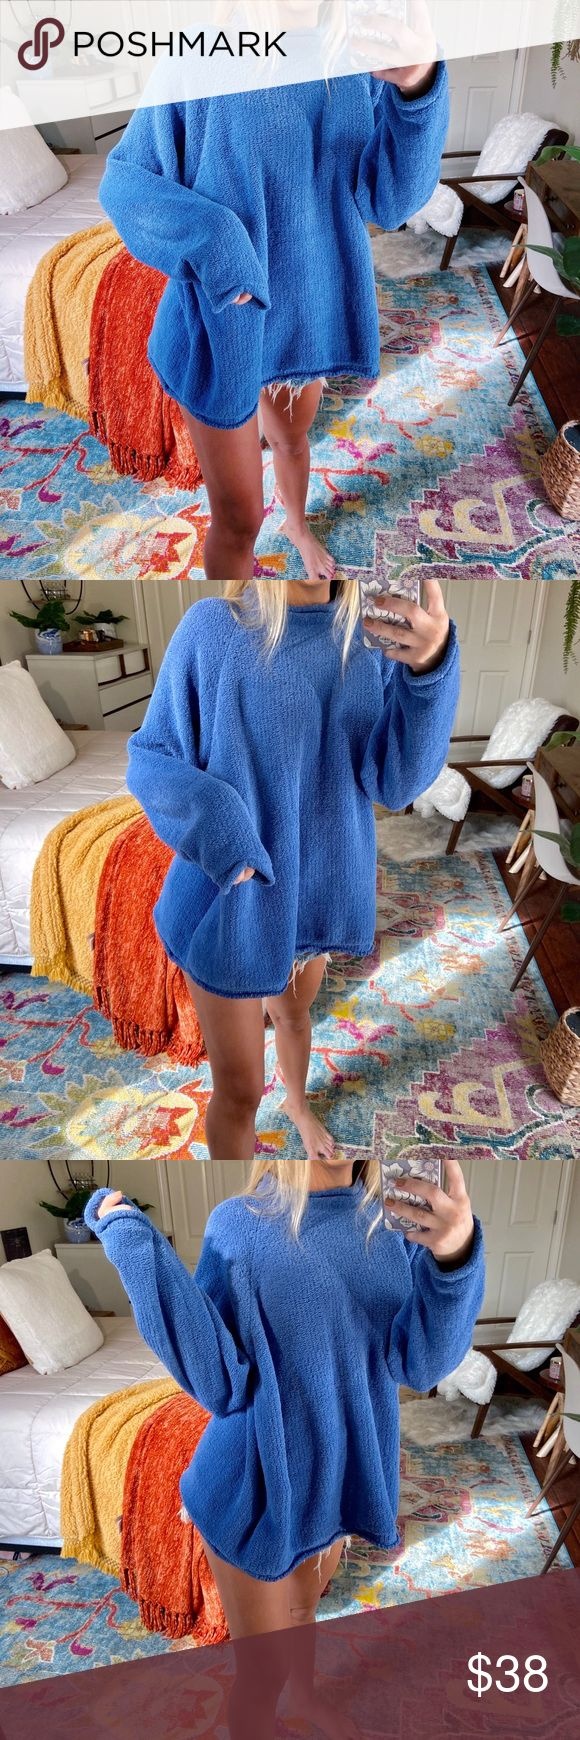 blue ultra plush oversized knit descriptions coming soon! ask me any questions in the mean time ✨ ➳ tags • boho, beachy, trendy, dainty, cozy, c...